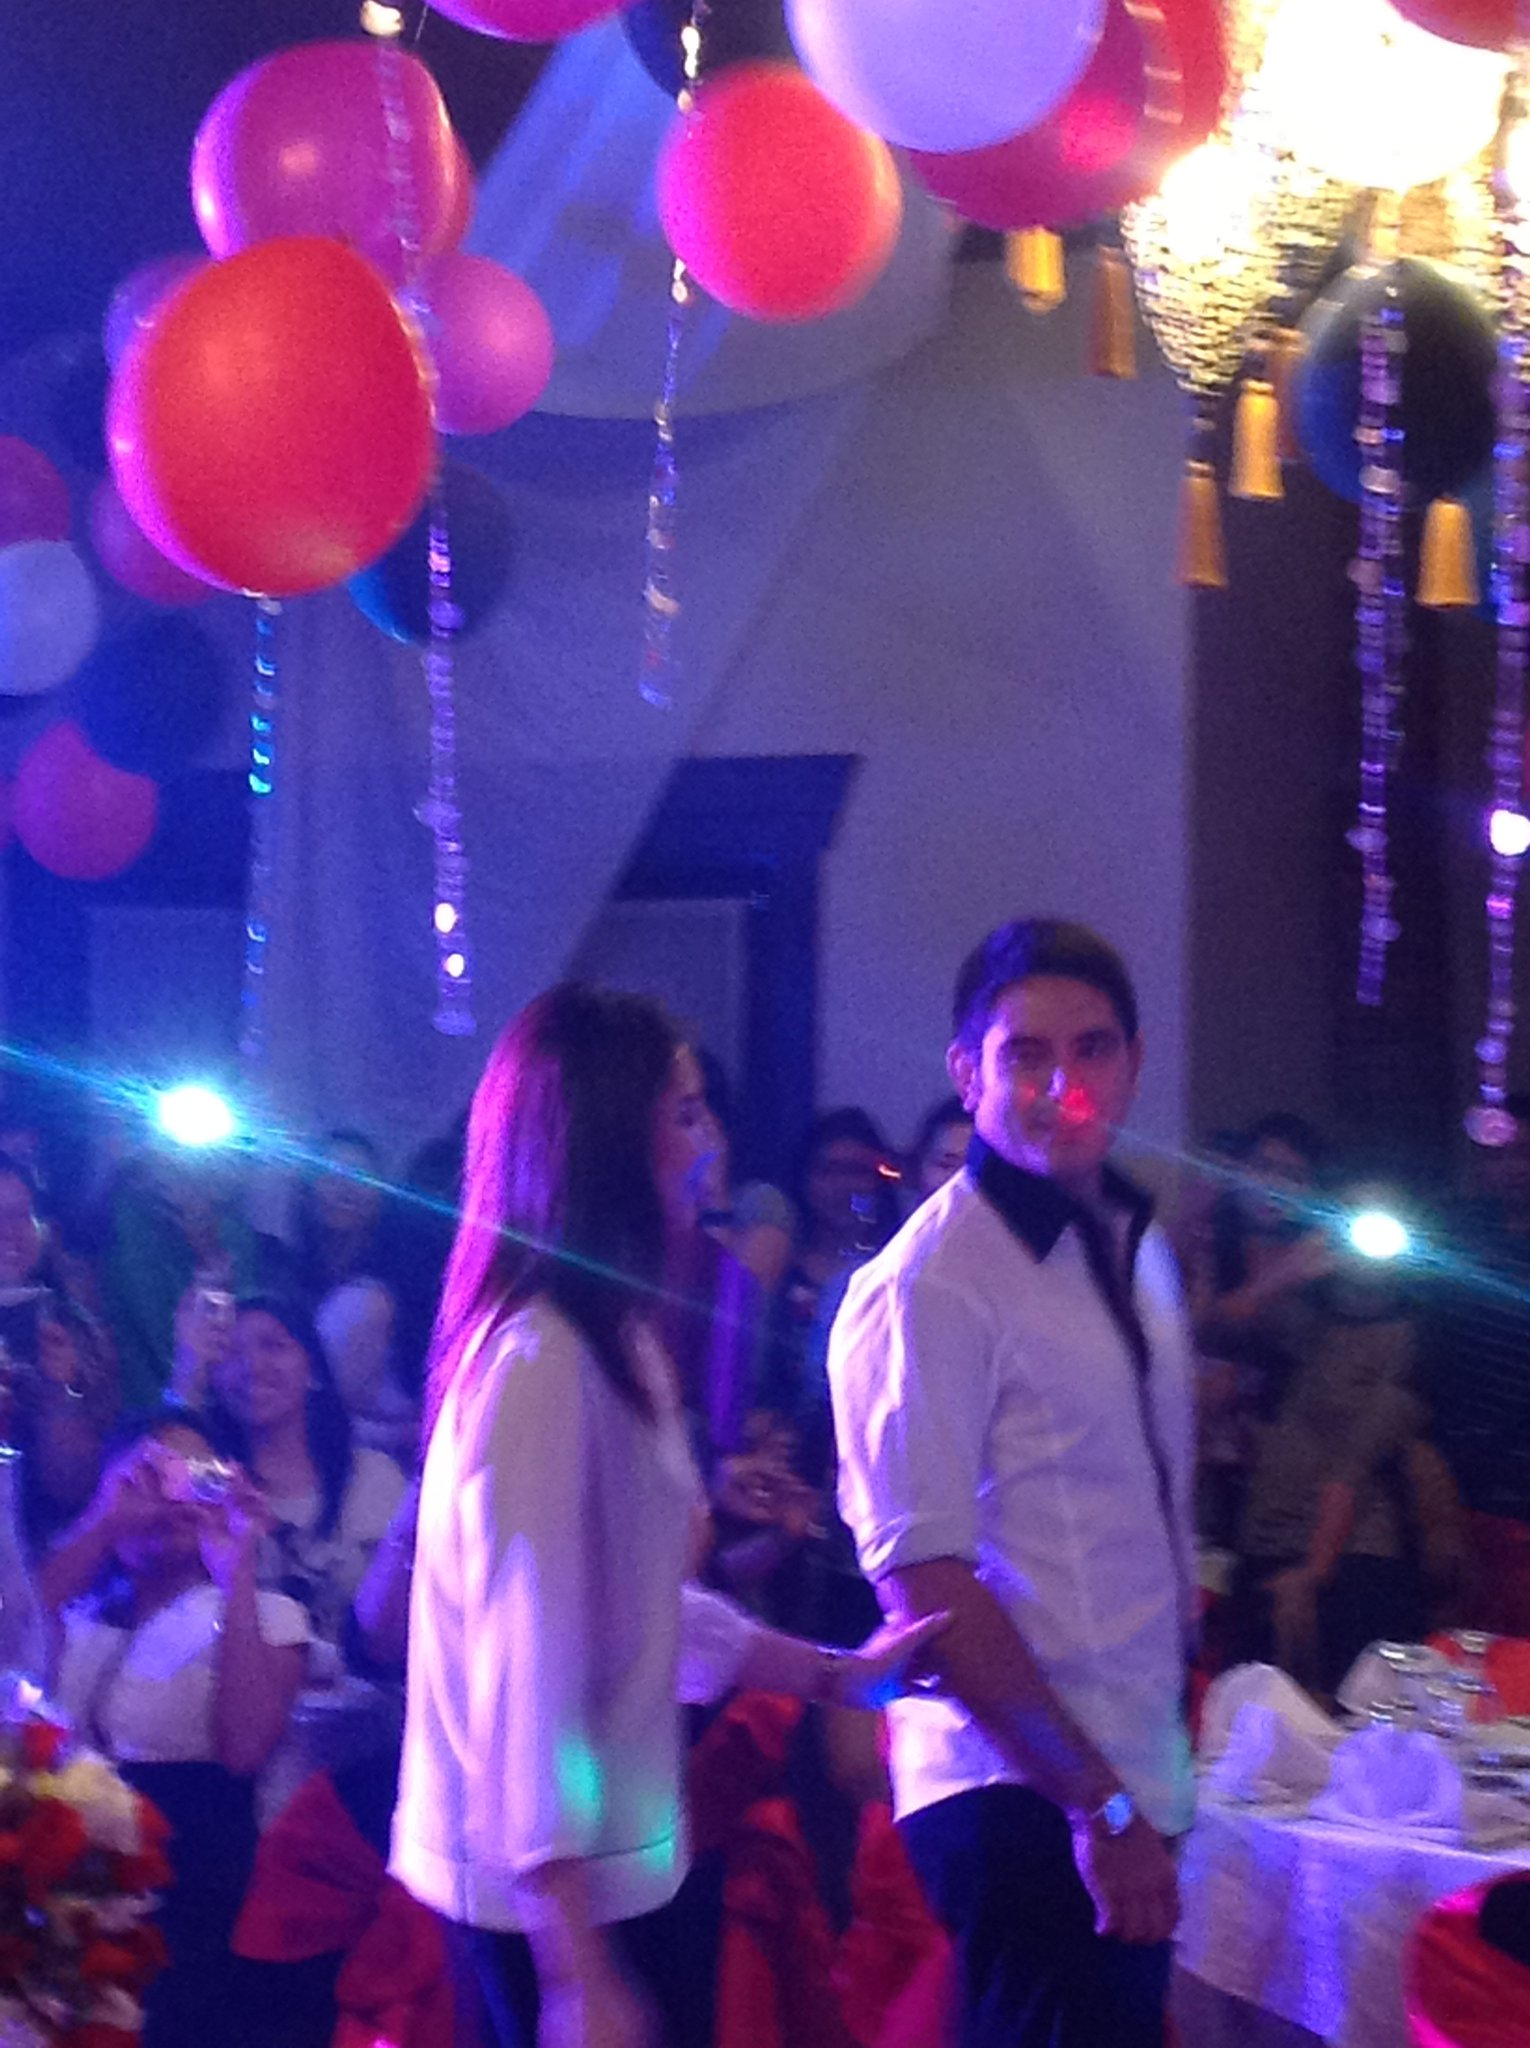 Sasa and Gege arrival at the AshRald bday bash for Sarah ¬ンᄂ http://t.co/1bLr6H6I